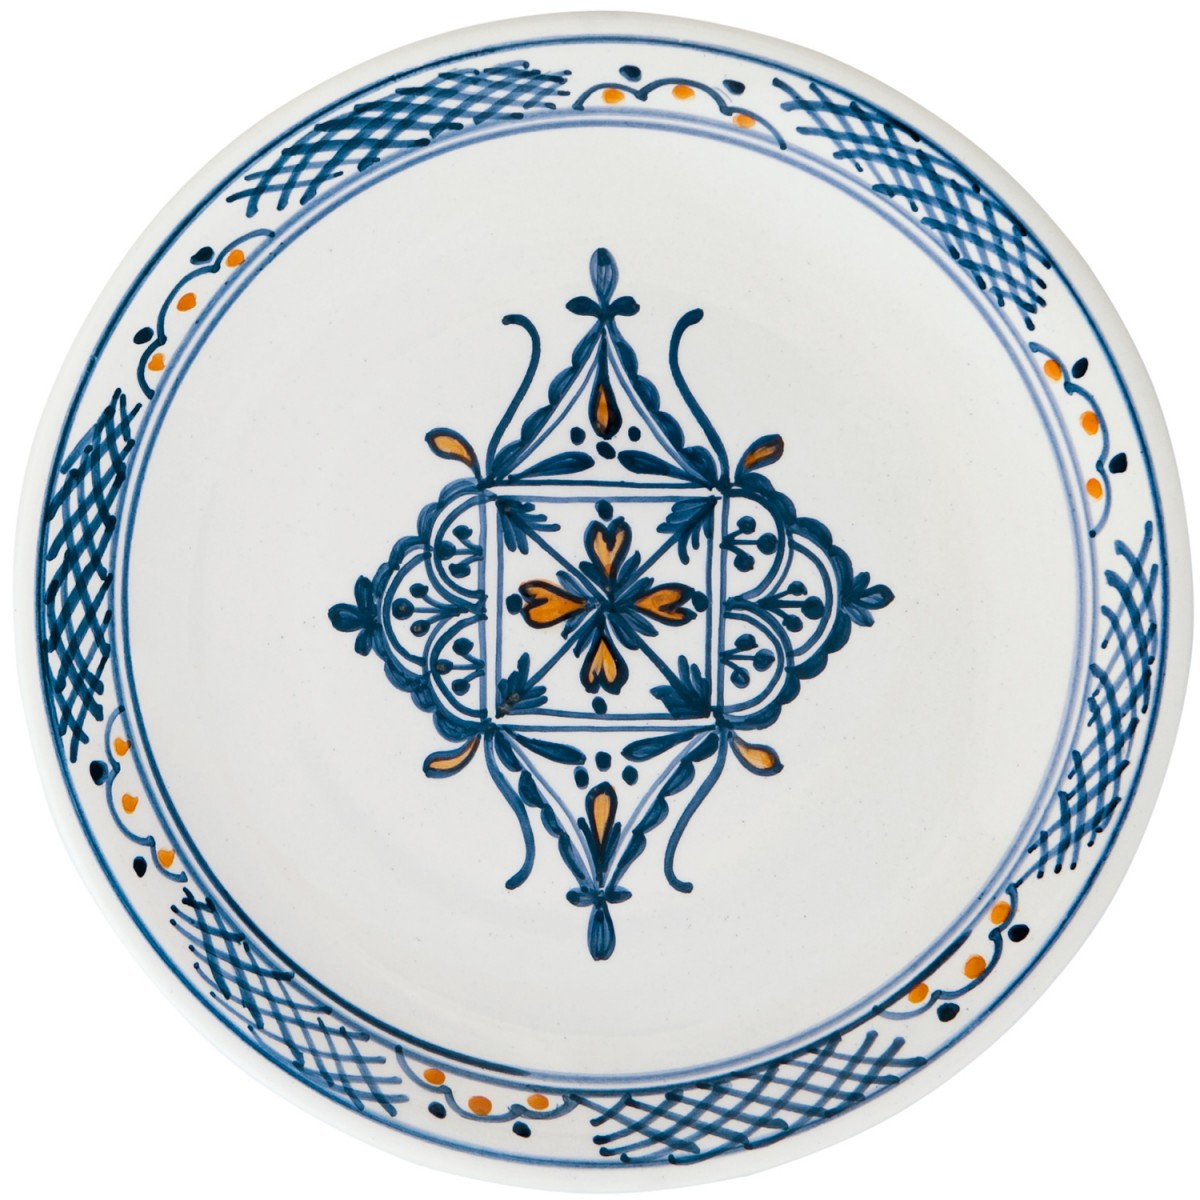 Hand_Painted_Ceramic_Dinner_Decorative_Plates-Eclectic_Blue-White-1